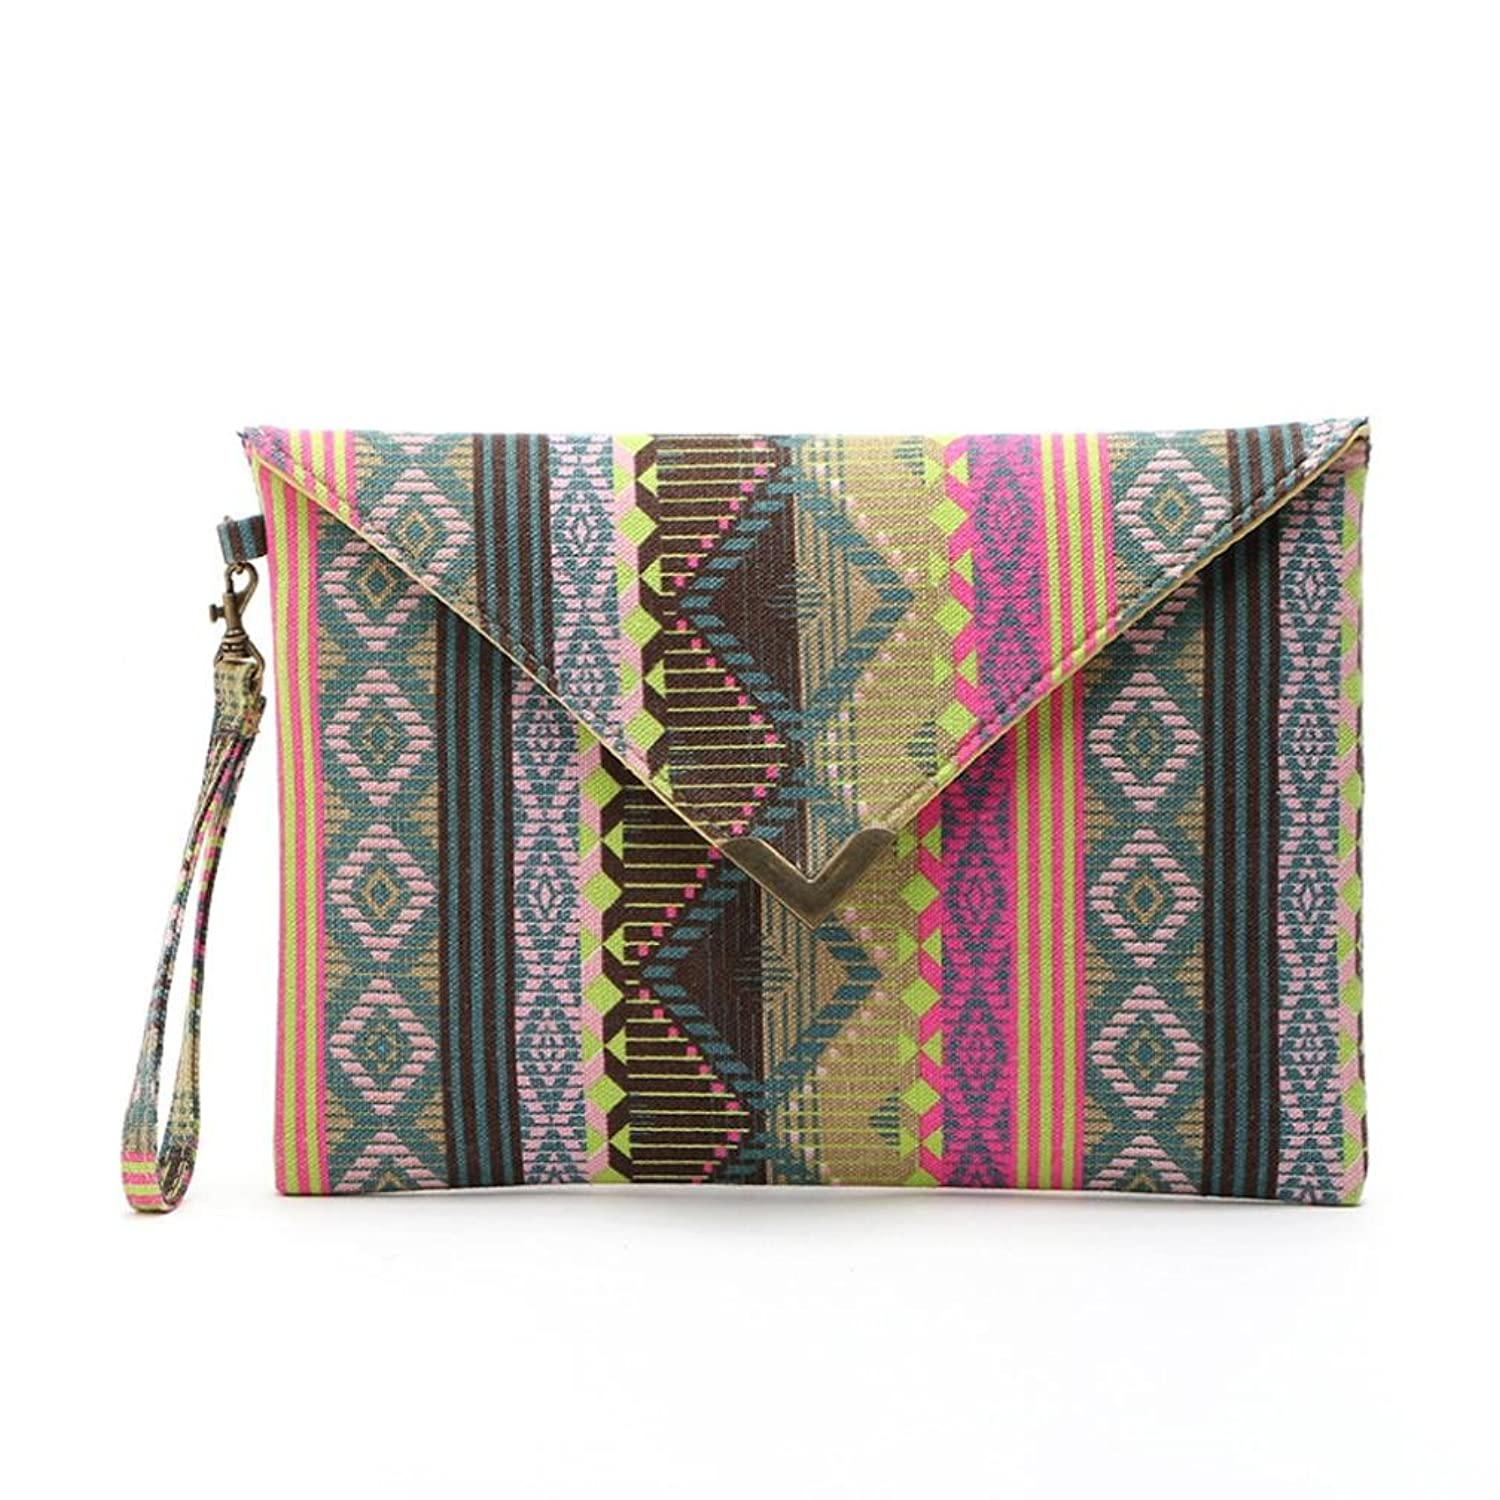 Kemilove Women Retro Ethnic Envelope Bag, Geometric Pattern